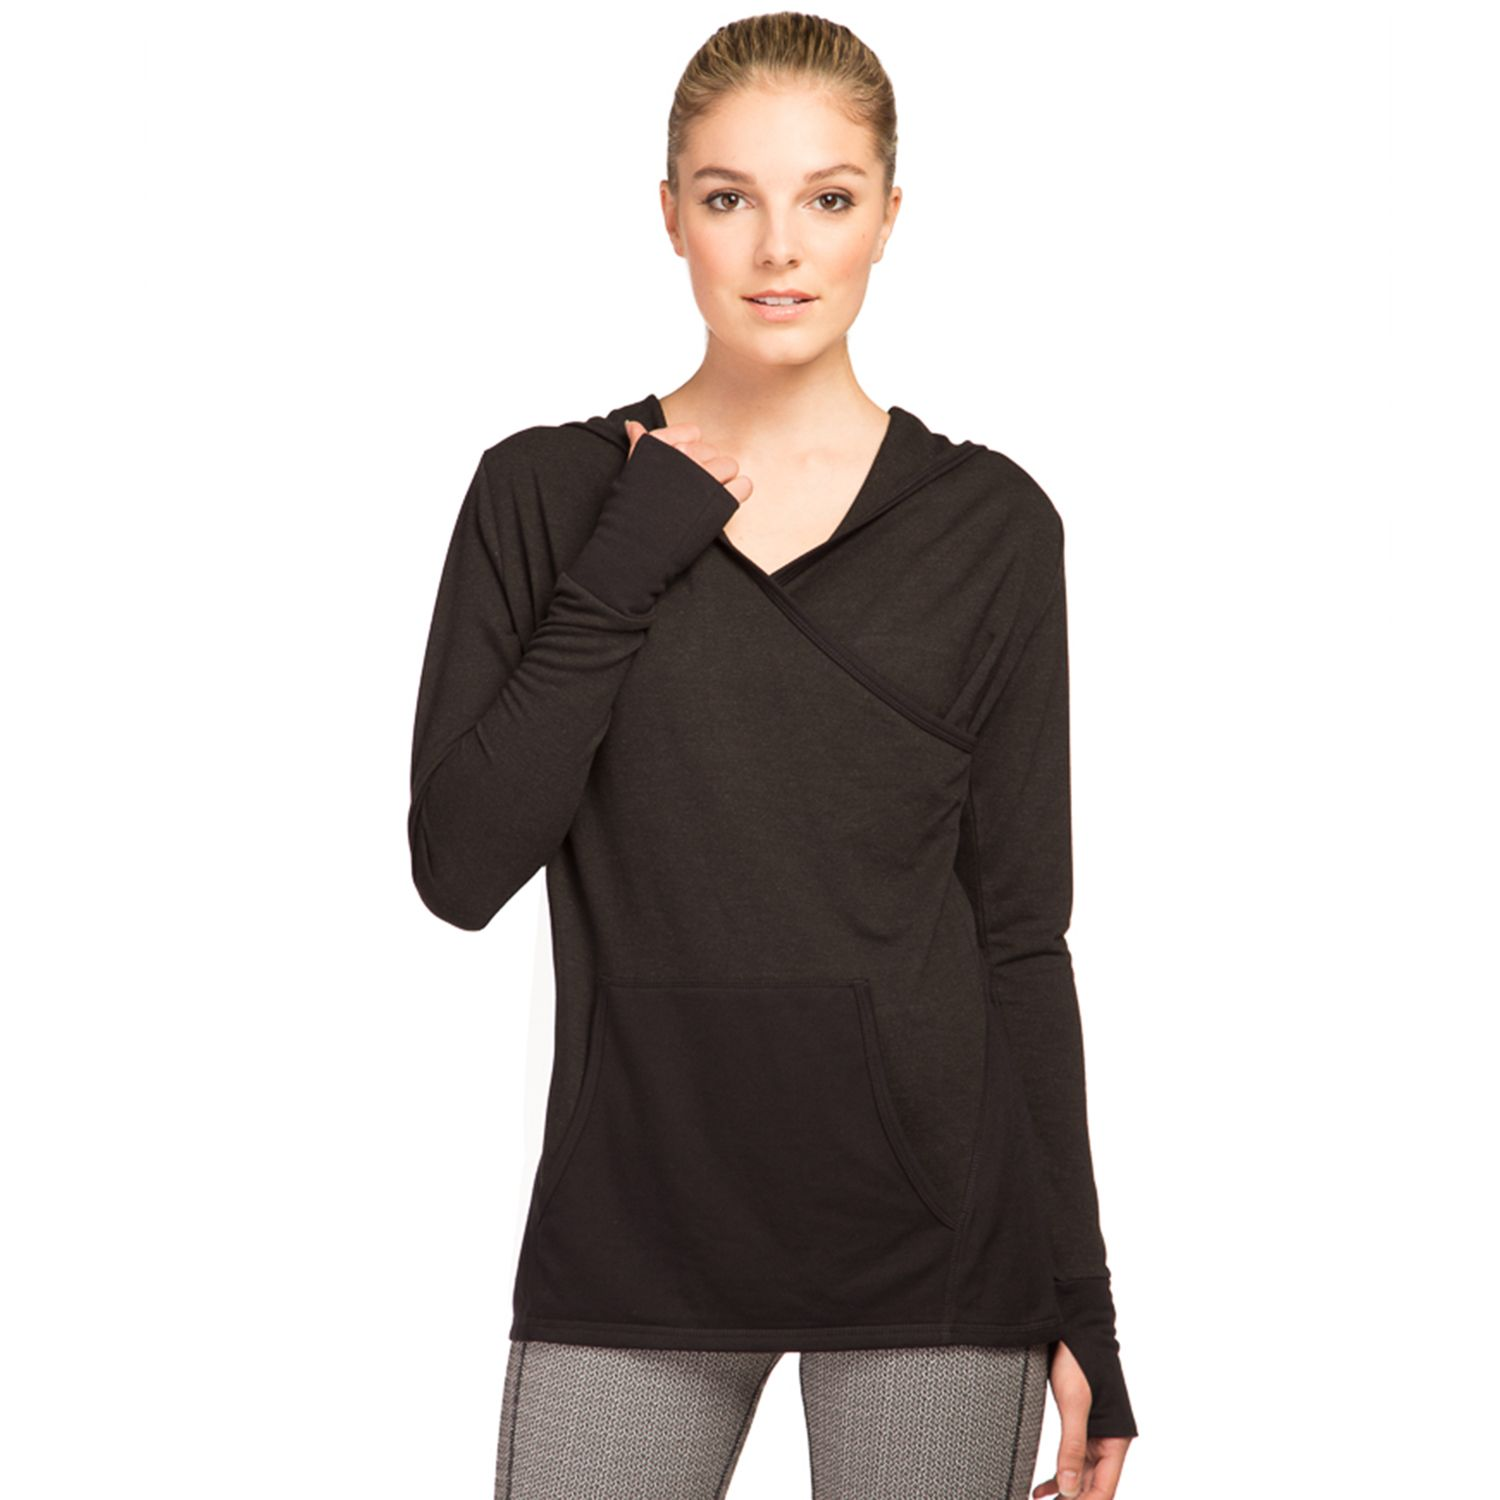 Womens Pro Series by Kyodan French Terry Yoga Hoodie